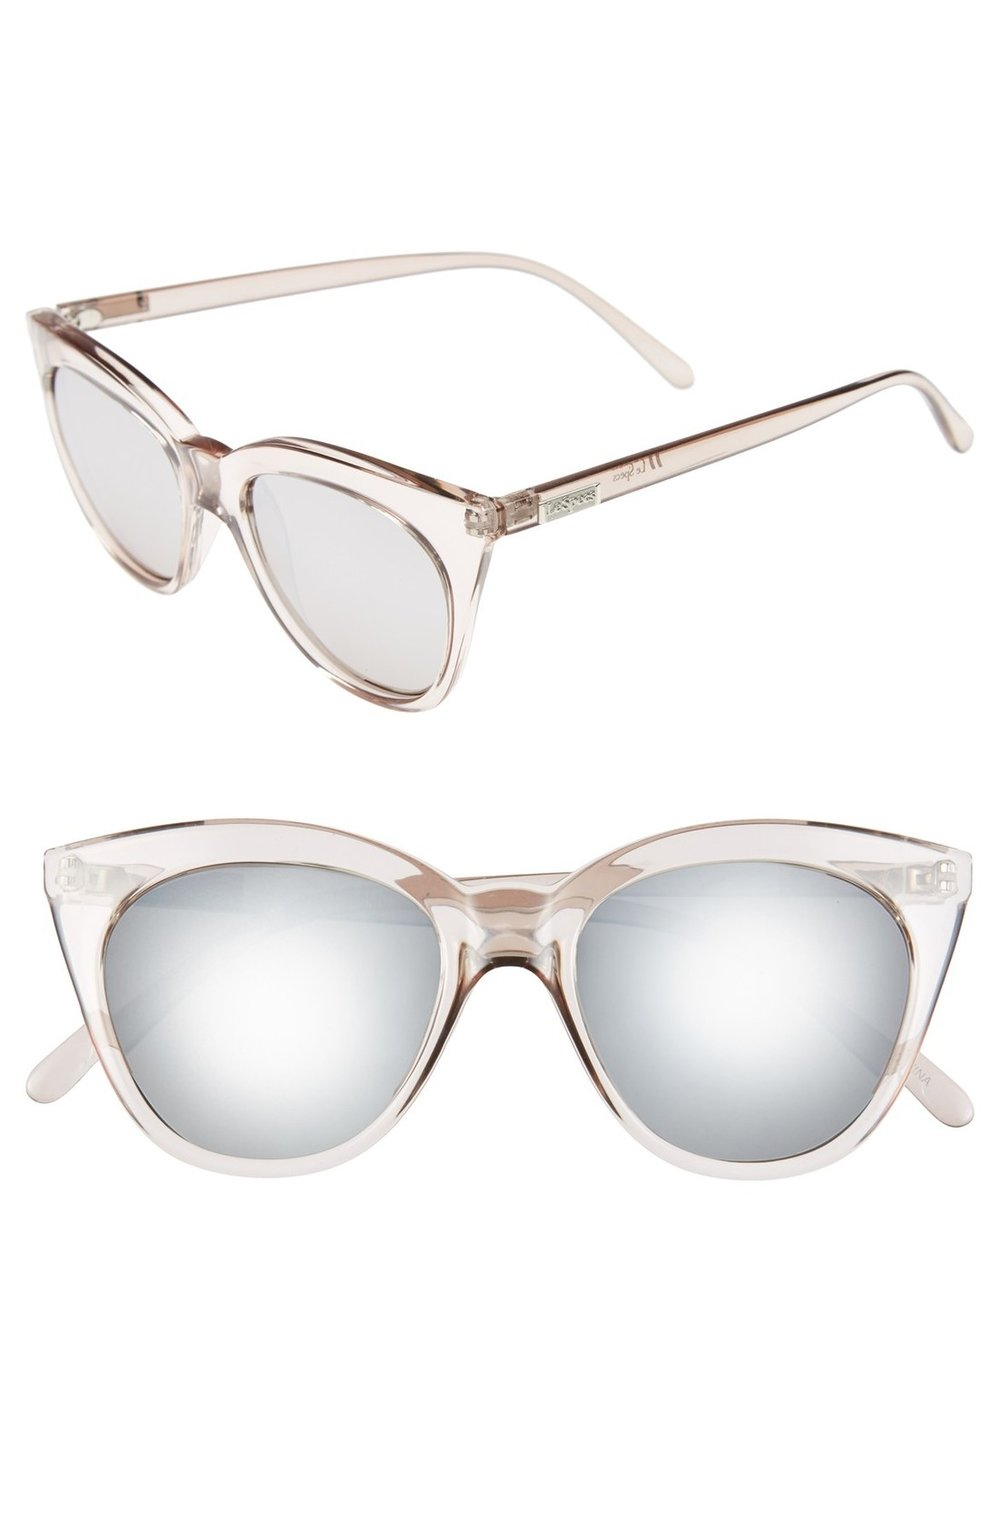 Le Specs halfmoon magic 51mm cat eye sunglasses in stone